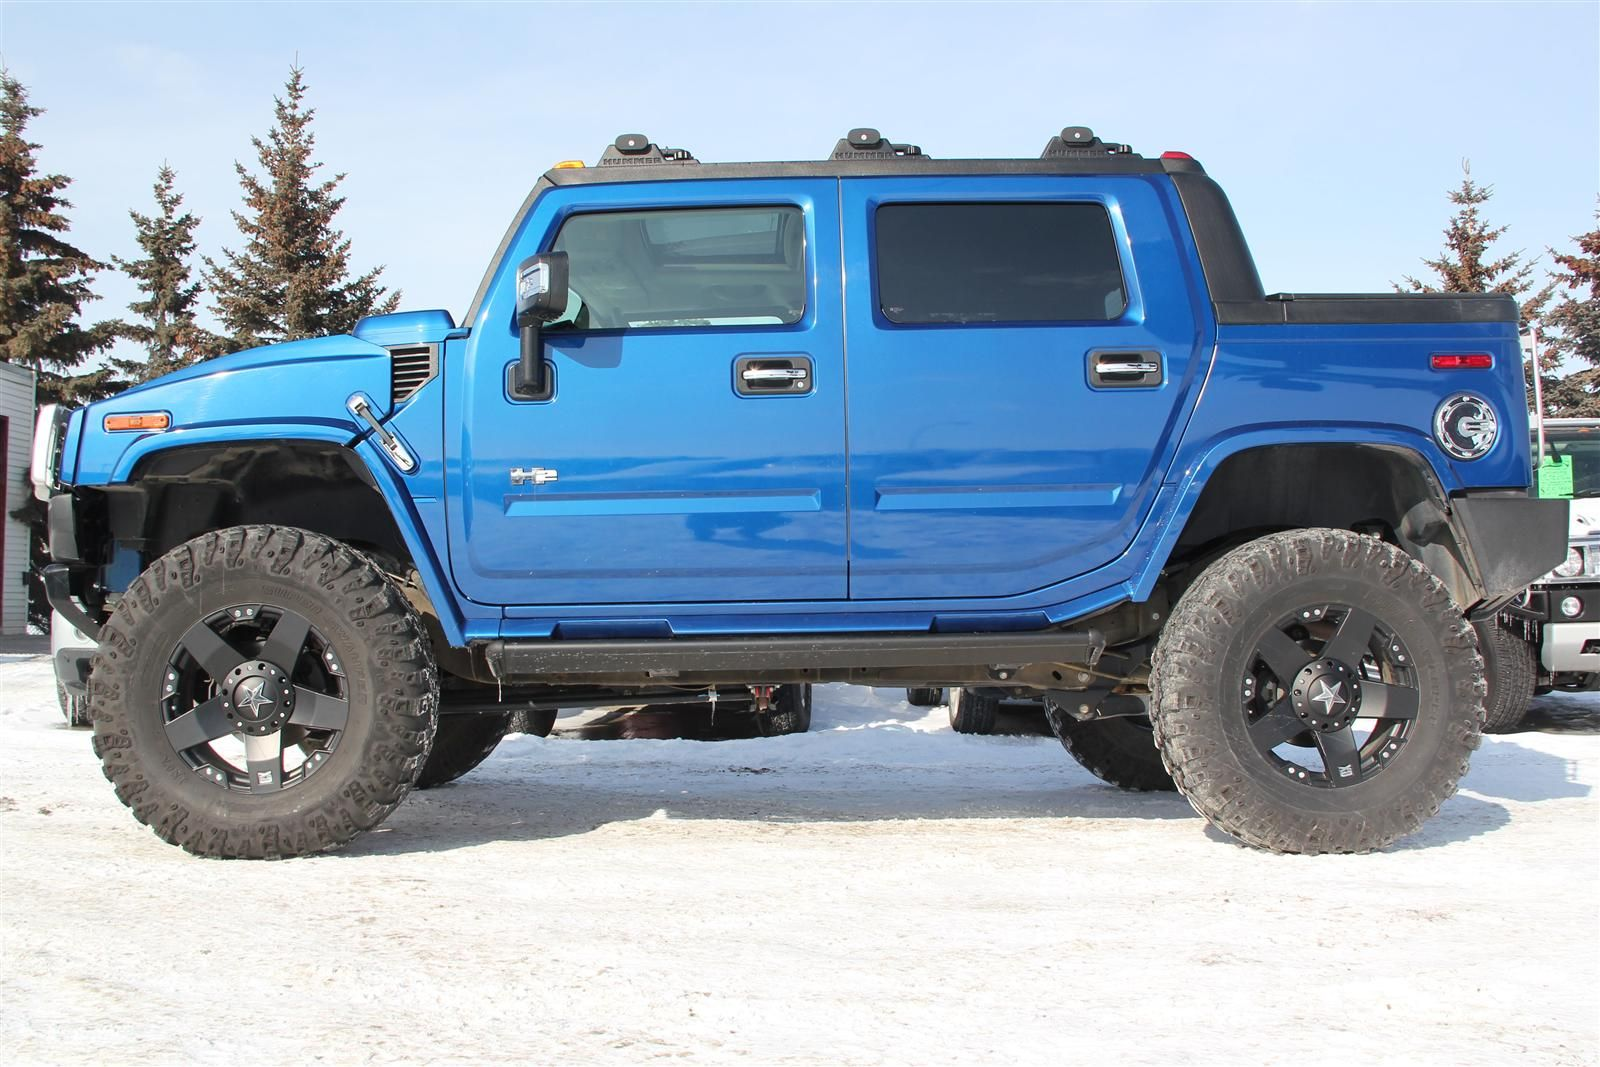 2006 h2 hummer pacific blue limited supercharged with a 6in